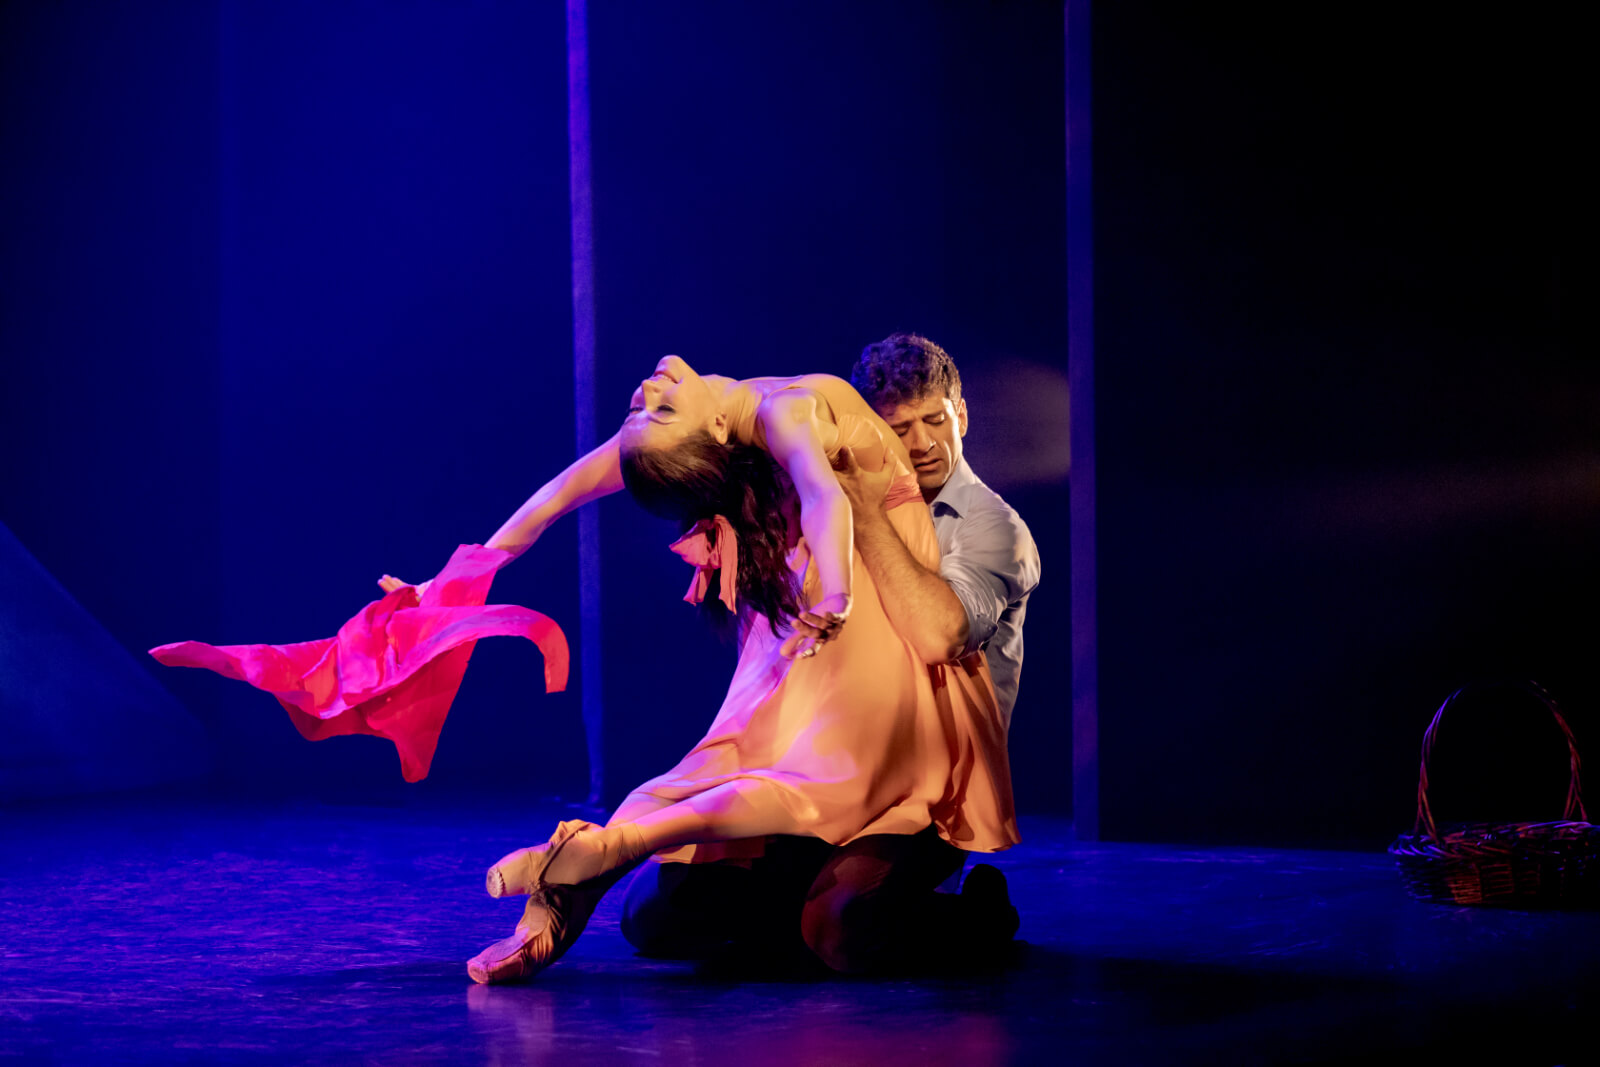 Tony Yazbeck and Irina Dvorovenko in a pas de duex: the man is kneeling and hugging woman in a backbend. She is holding a red scarf.